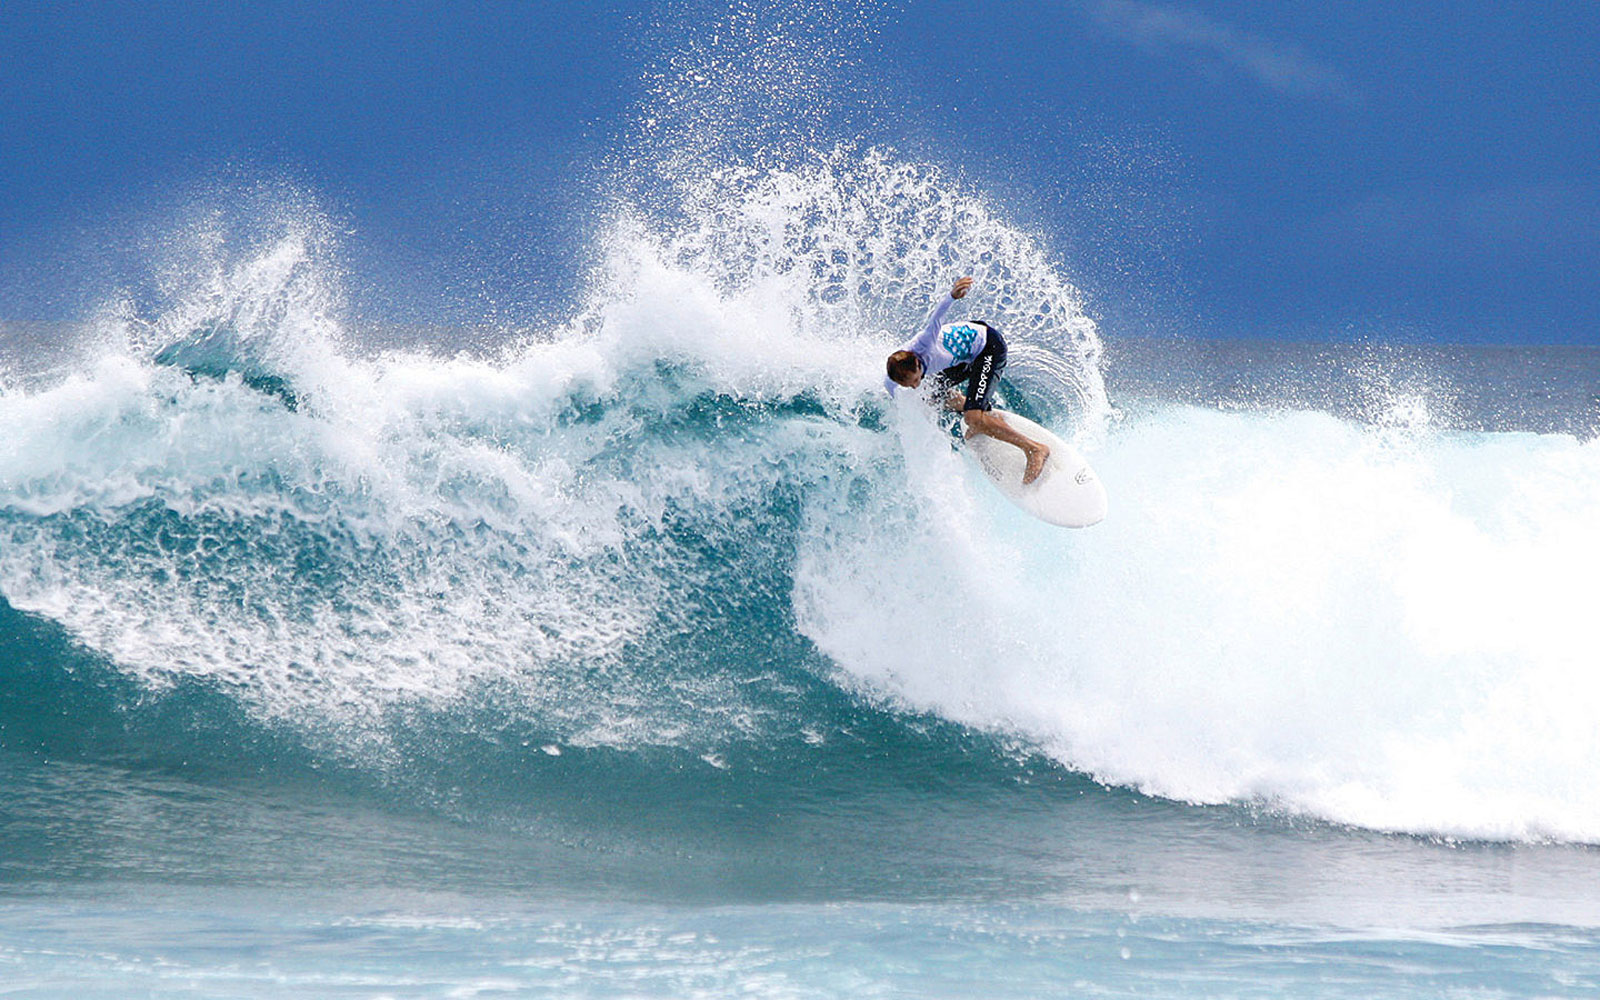 This Surfing Safari Will Take You to Turquoise Waves in the Middle of the Maldives